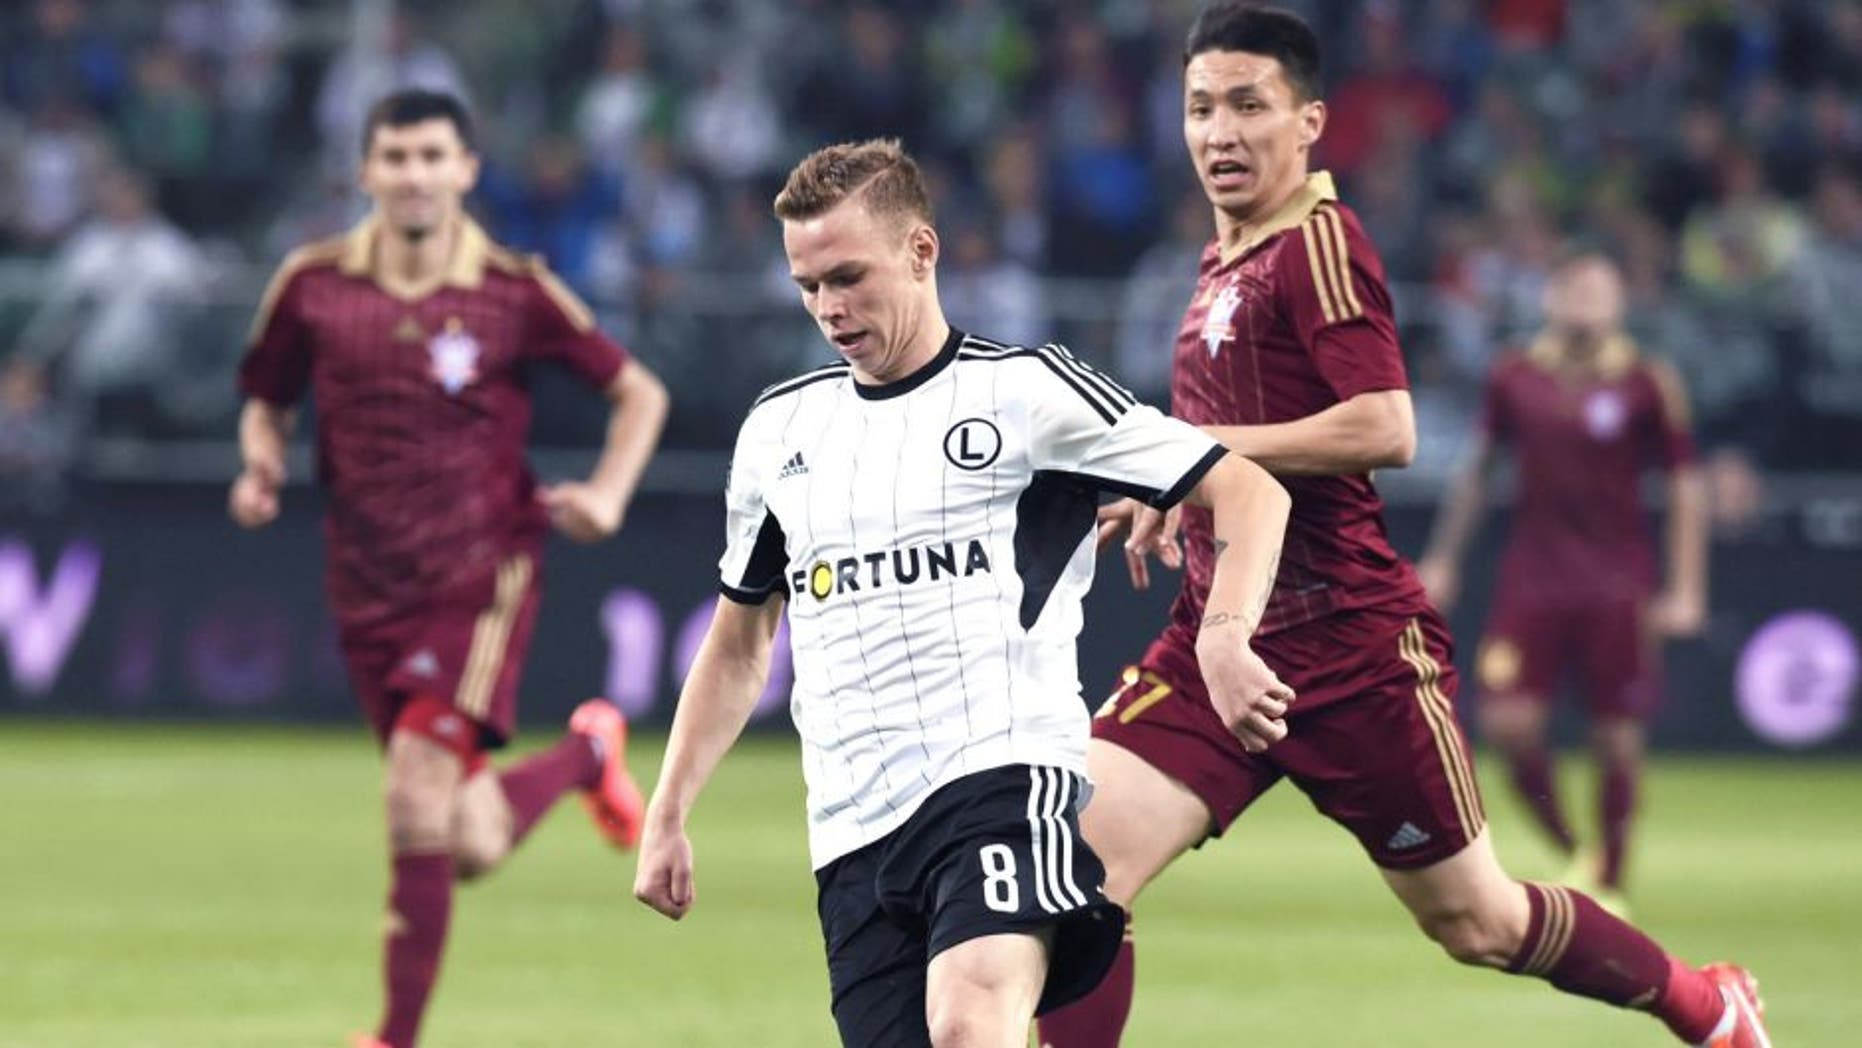 WARSAW, POLAND - AUGUST 28: (SOUTH AFRICA AND POLAND OUT) Ondrej Duda (C) of Legia during the UEFA Europa League qualifying play off round second leg match between Legia Warszawa and FK Aktobe at the Polish Army Stadium on August 28, 2014 in Warsaw, Poland. (Photo by Adam Jagielak/Gallo Images/Getty Images)